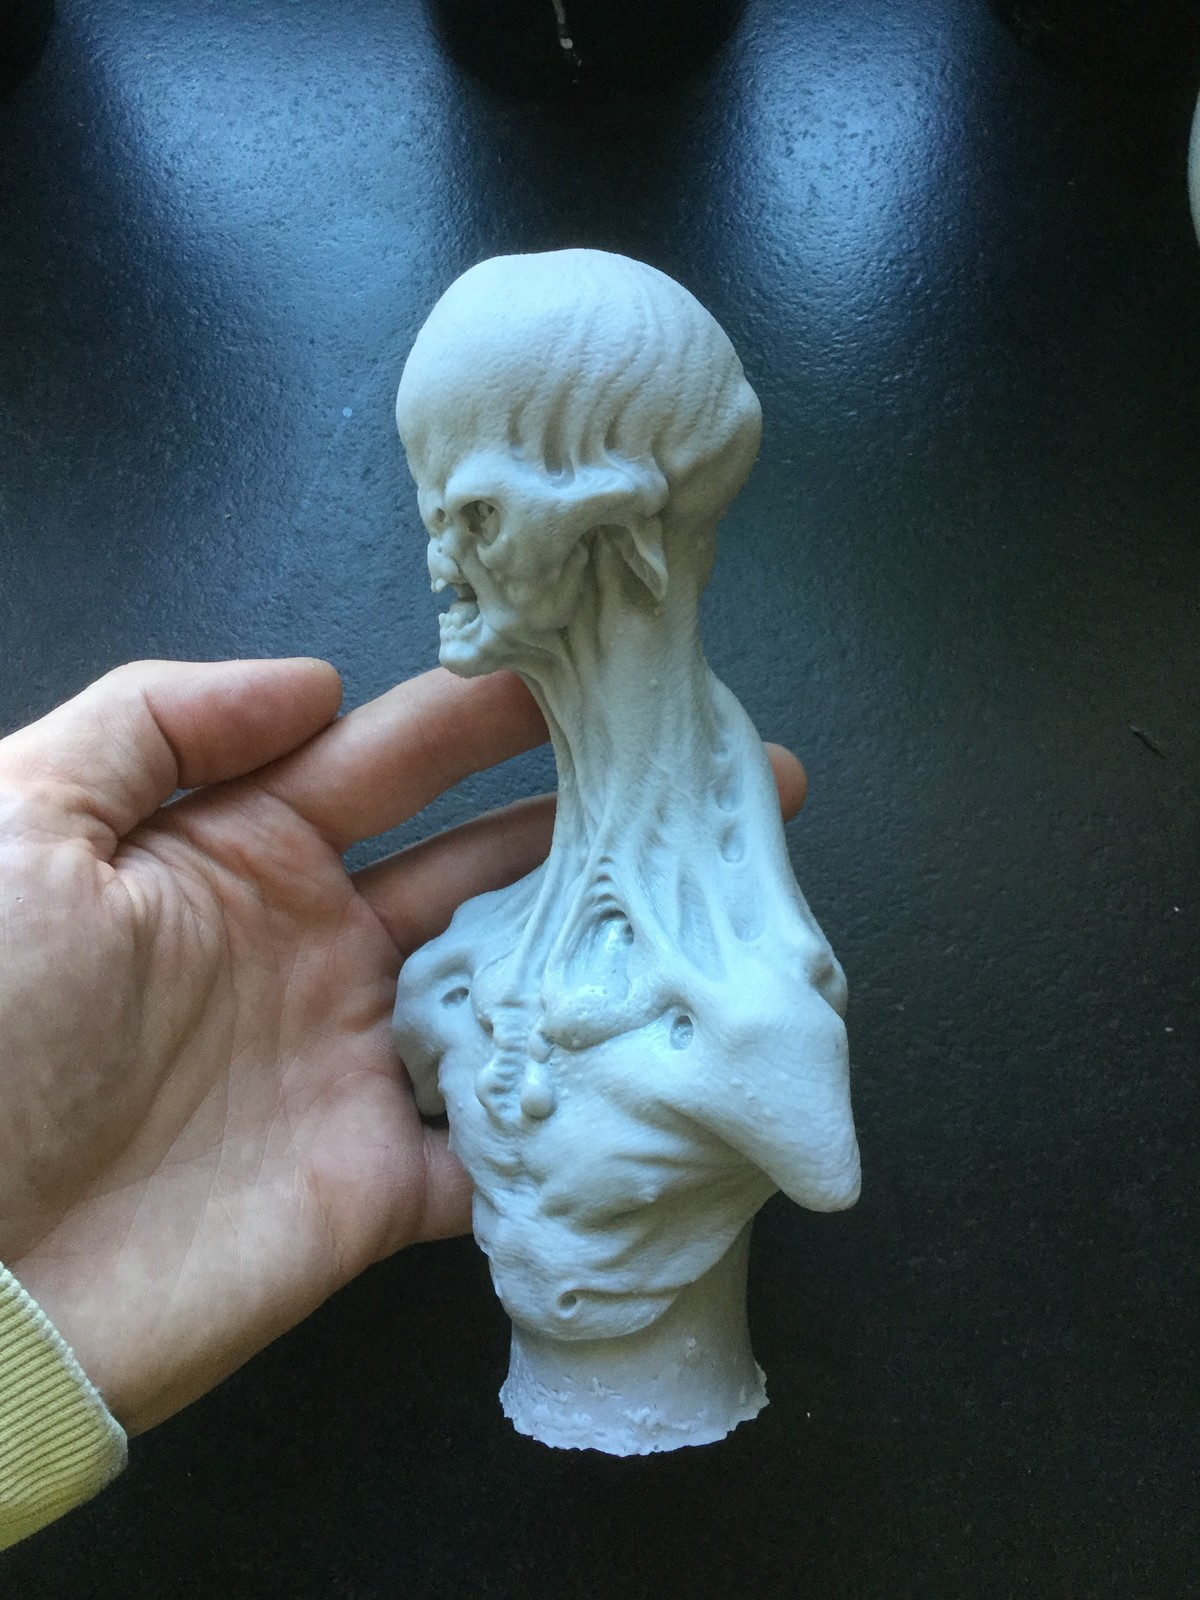 Alien/cast resin